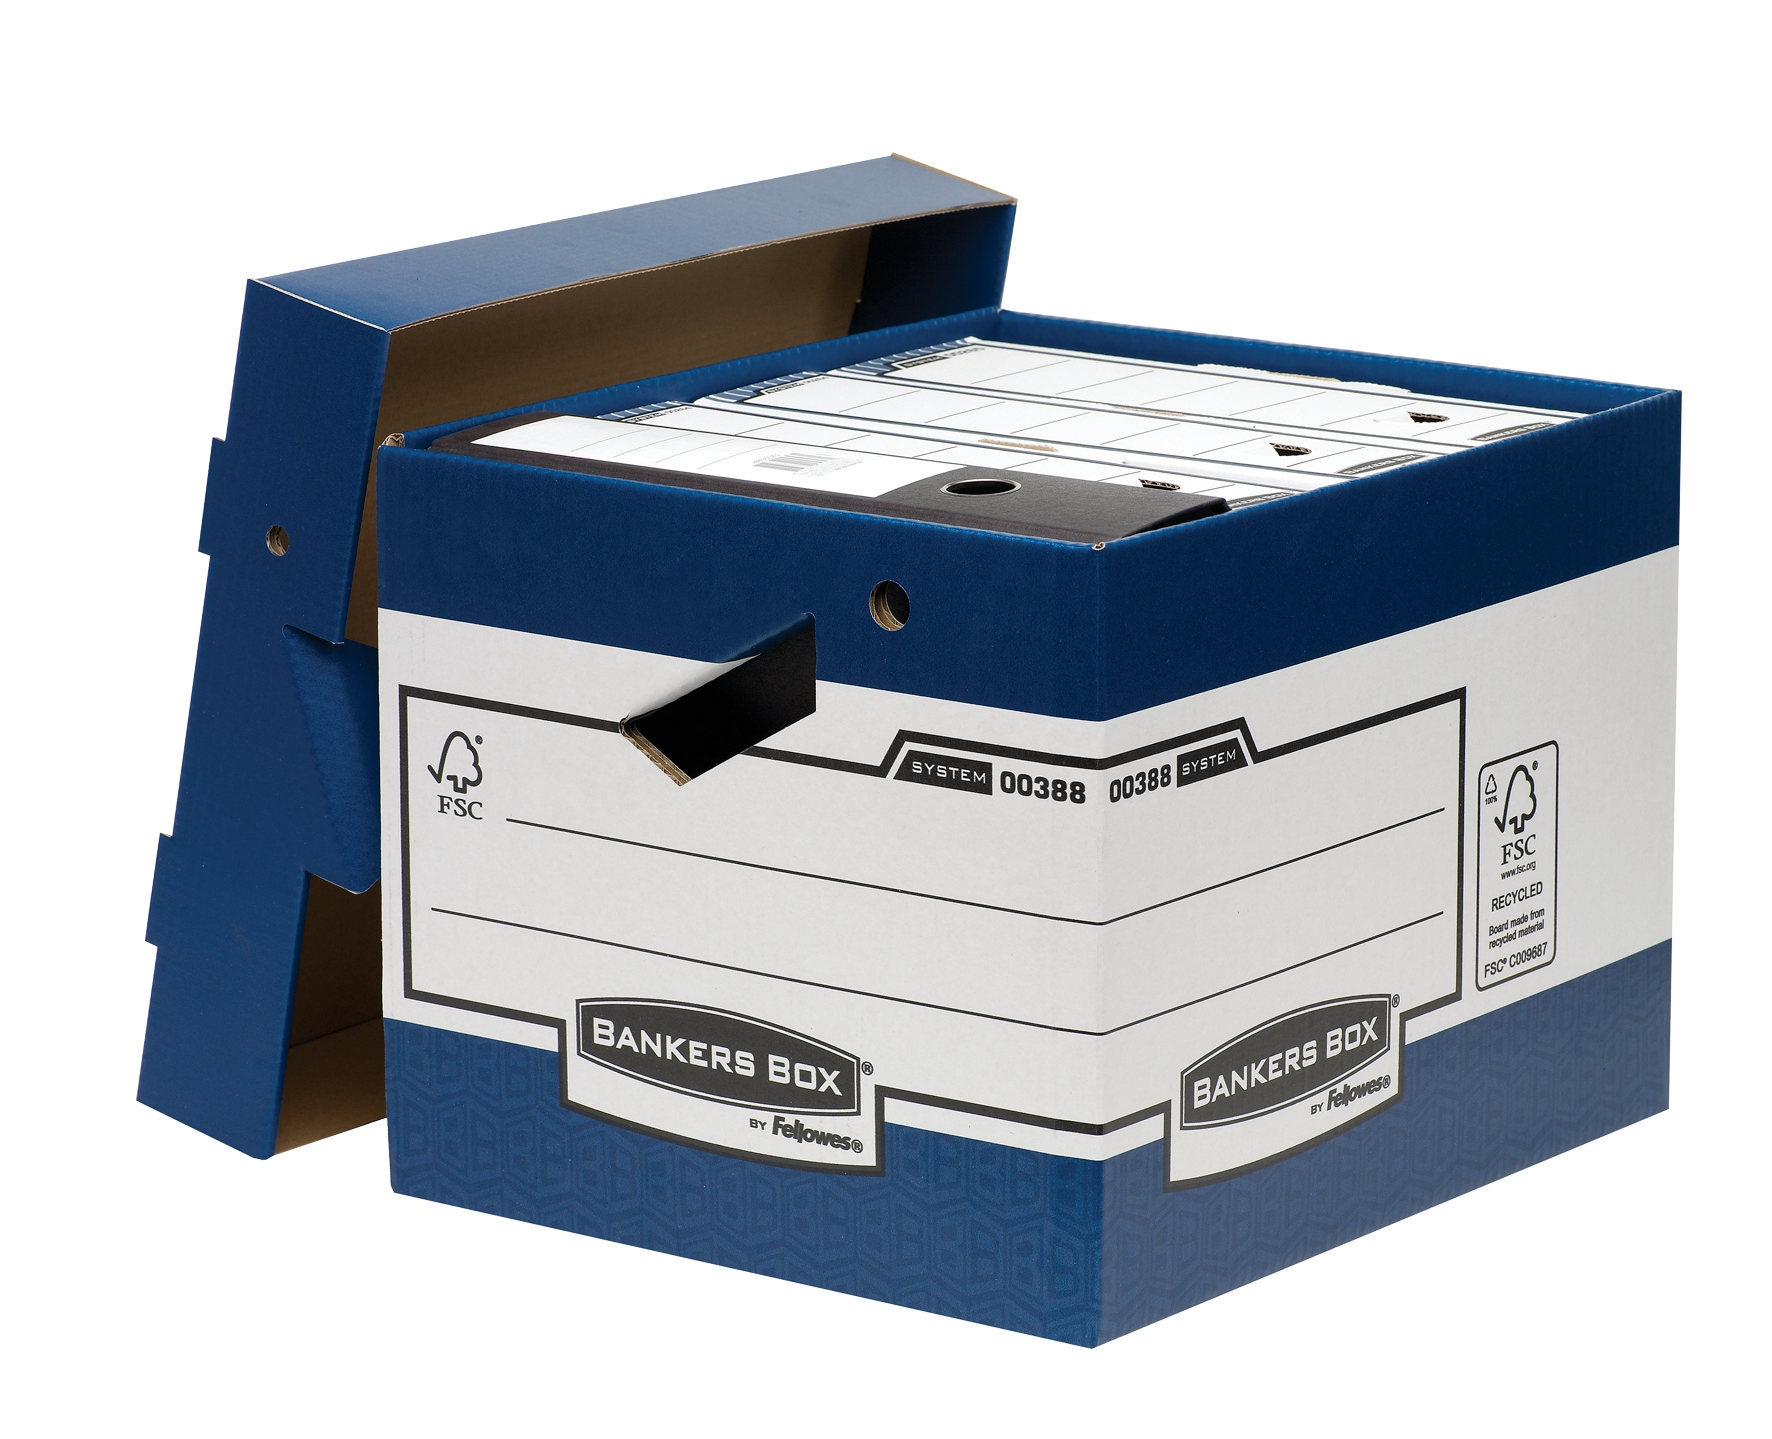 Bankers Box by Fellowes System Heavy Duty ERGO Storage Box (1 x Pack of 10 Storage Box)